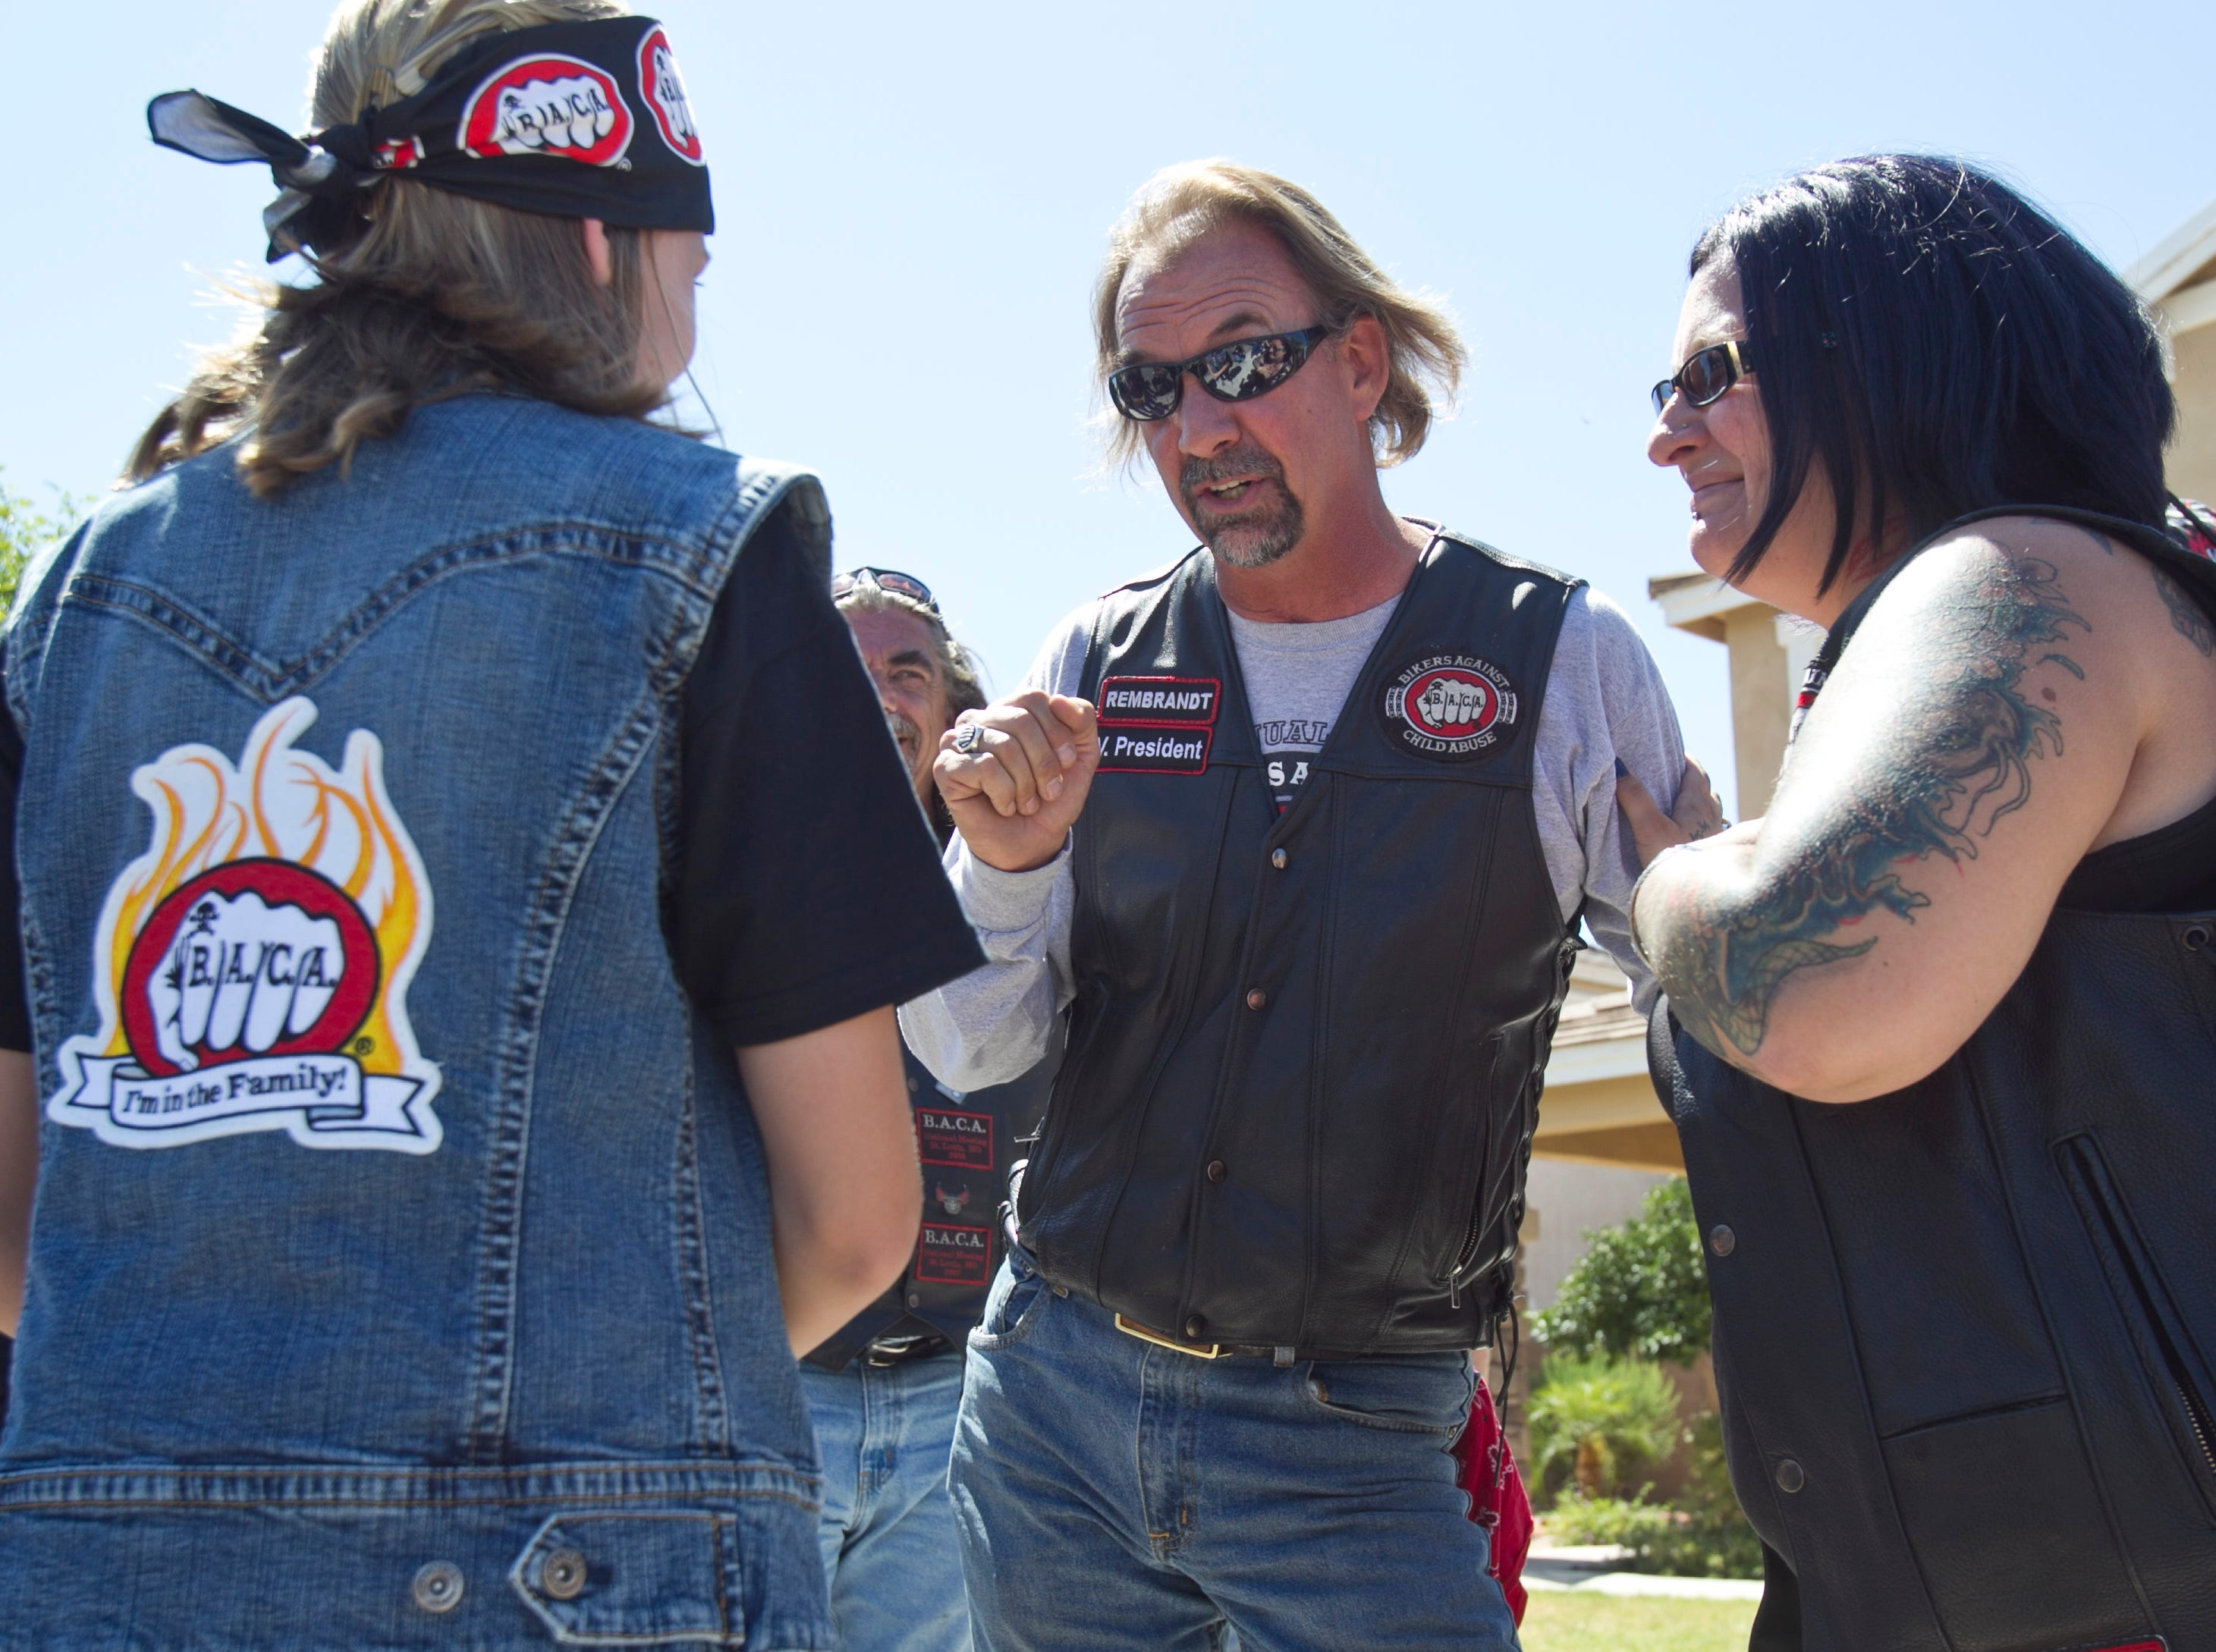 Rembrandt (center) and other members of Bikers Against Child Abuse meet with a child who has been the victim of abuse.